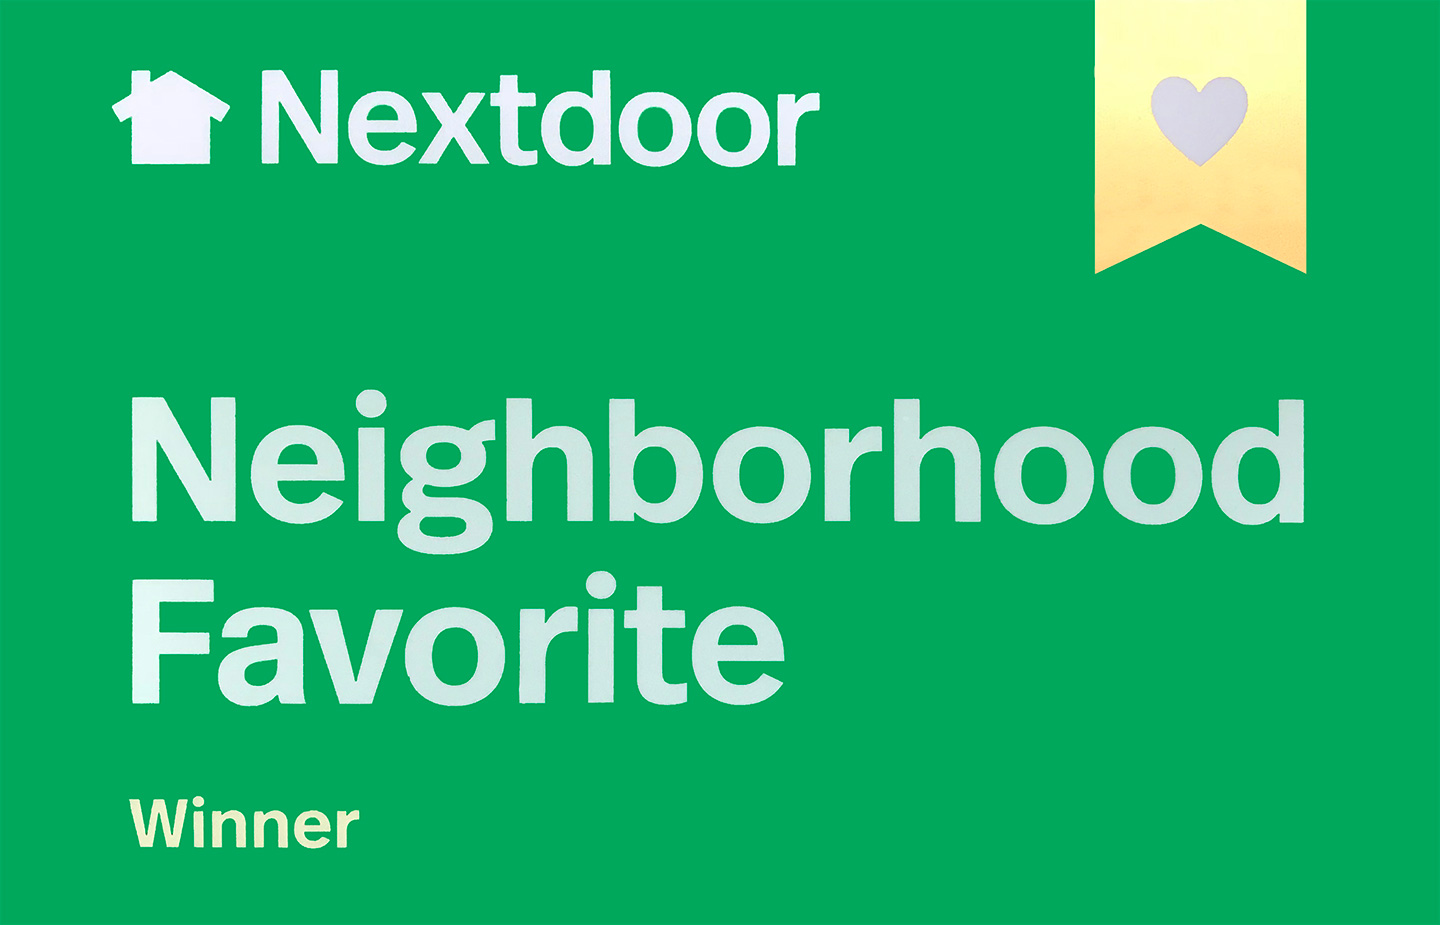 NextDoor Award presented to Magnolia Family Dentistry the Practice of Dr. Matt Yarborough